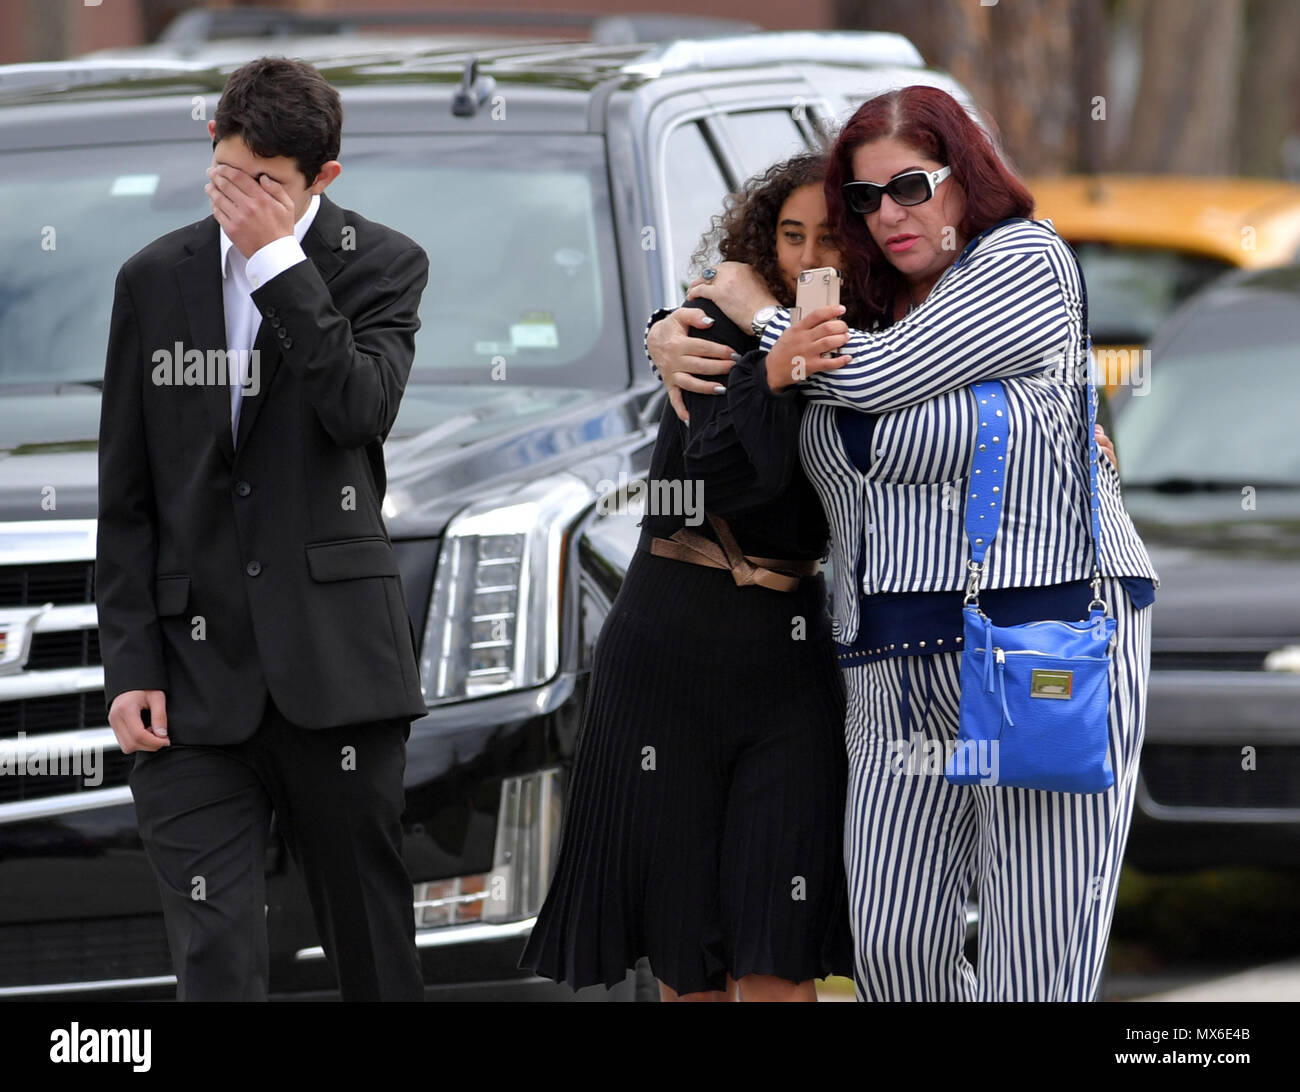 FORT LAUDERDALE,  FL - FEBRUARY 20: Peter Wang, 15, who was among the 17 people killed by a gunman at Marjory Stoneman Douglas High School in Parkland, Florida was admitted to the class of 2025 at his dream school, West Point Academy.  There was a memorial service for him at Kraeer Funeral Home and Cremation Center and than he was laid to rest at Bailey Memorial Gardens on February 20, 2018    People:  Peter Wang Stock Photo